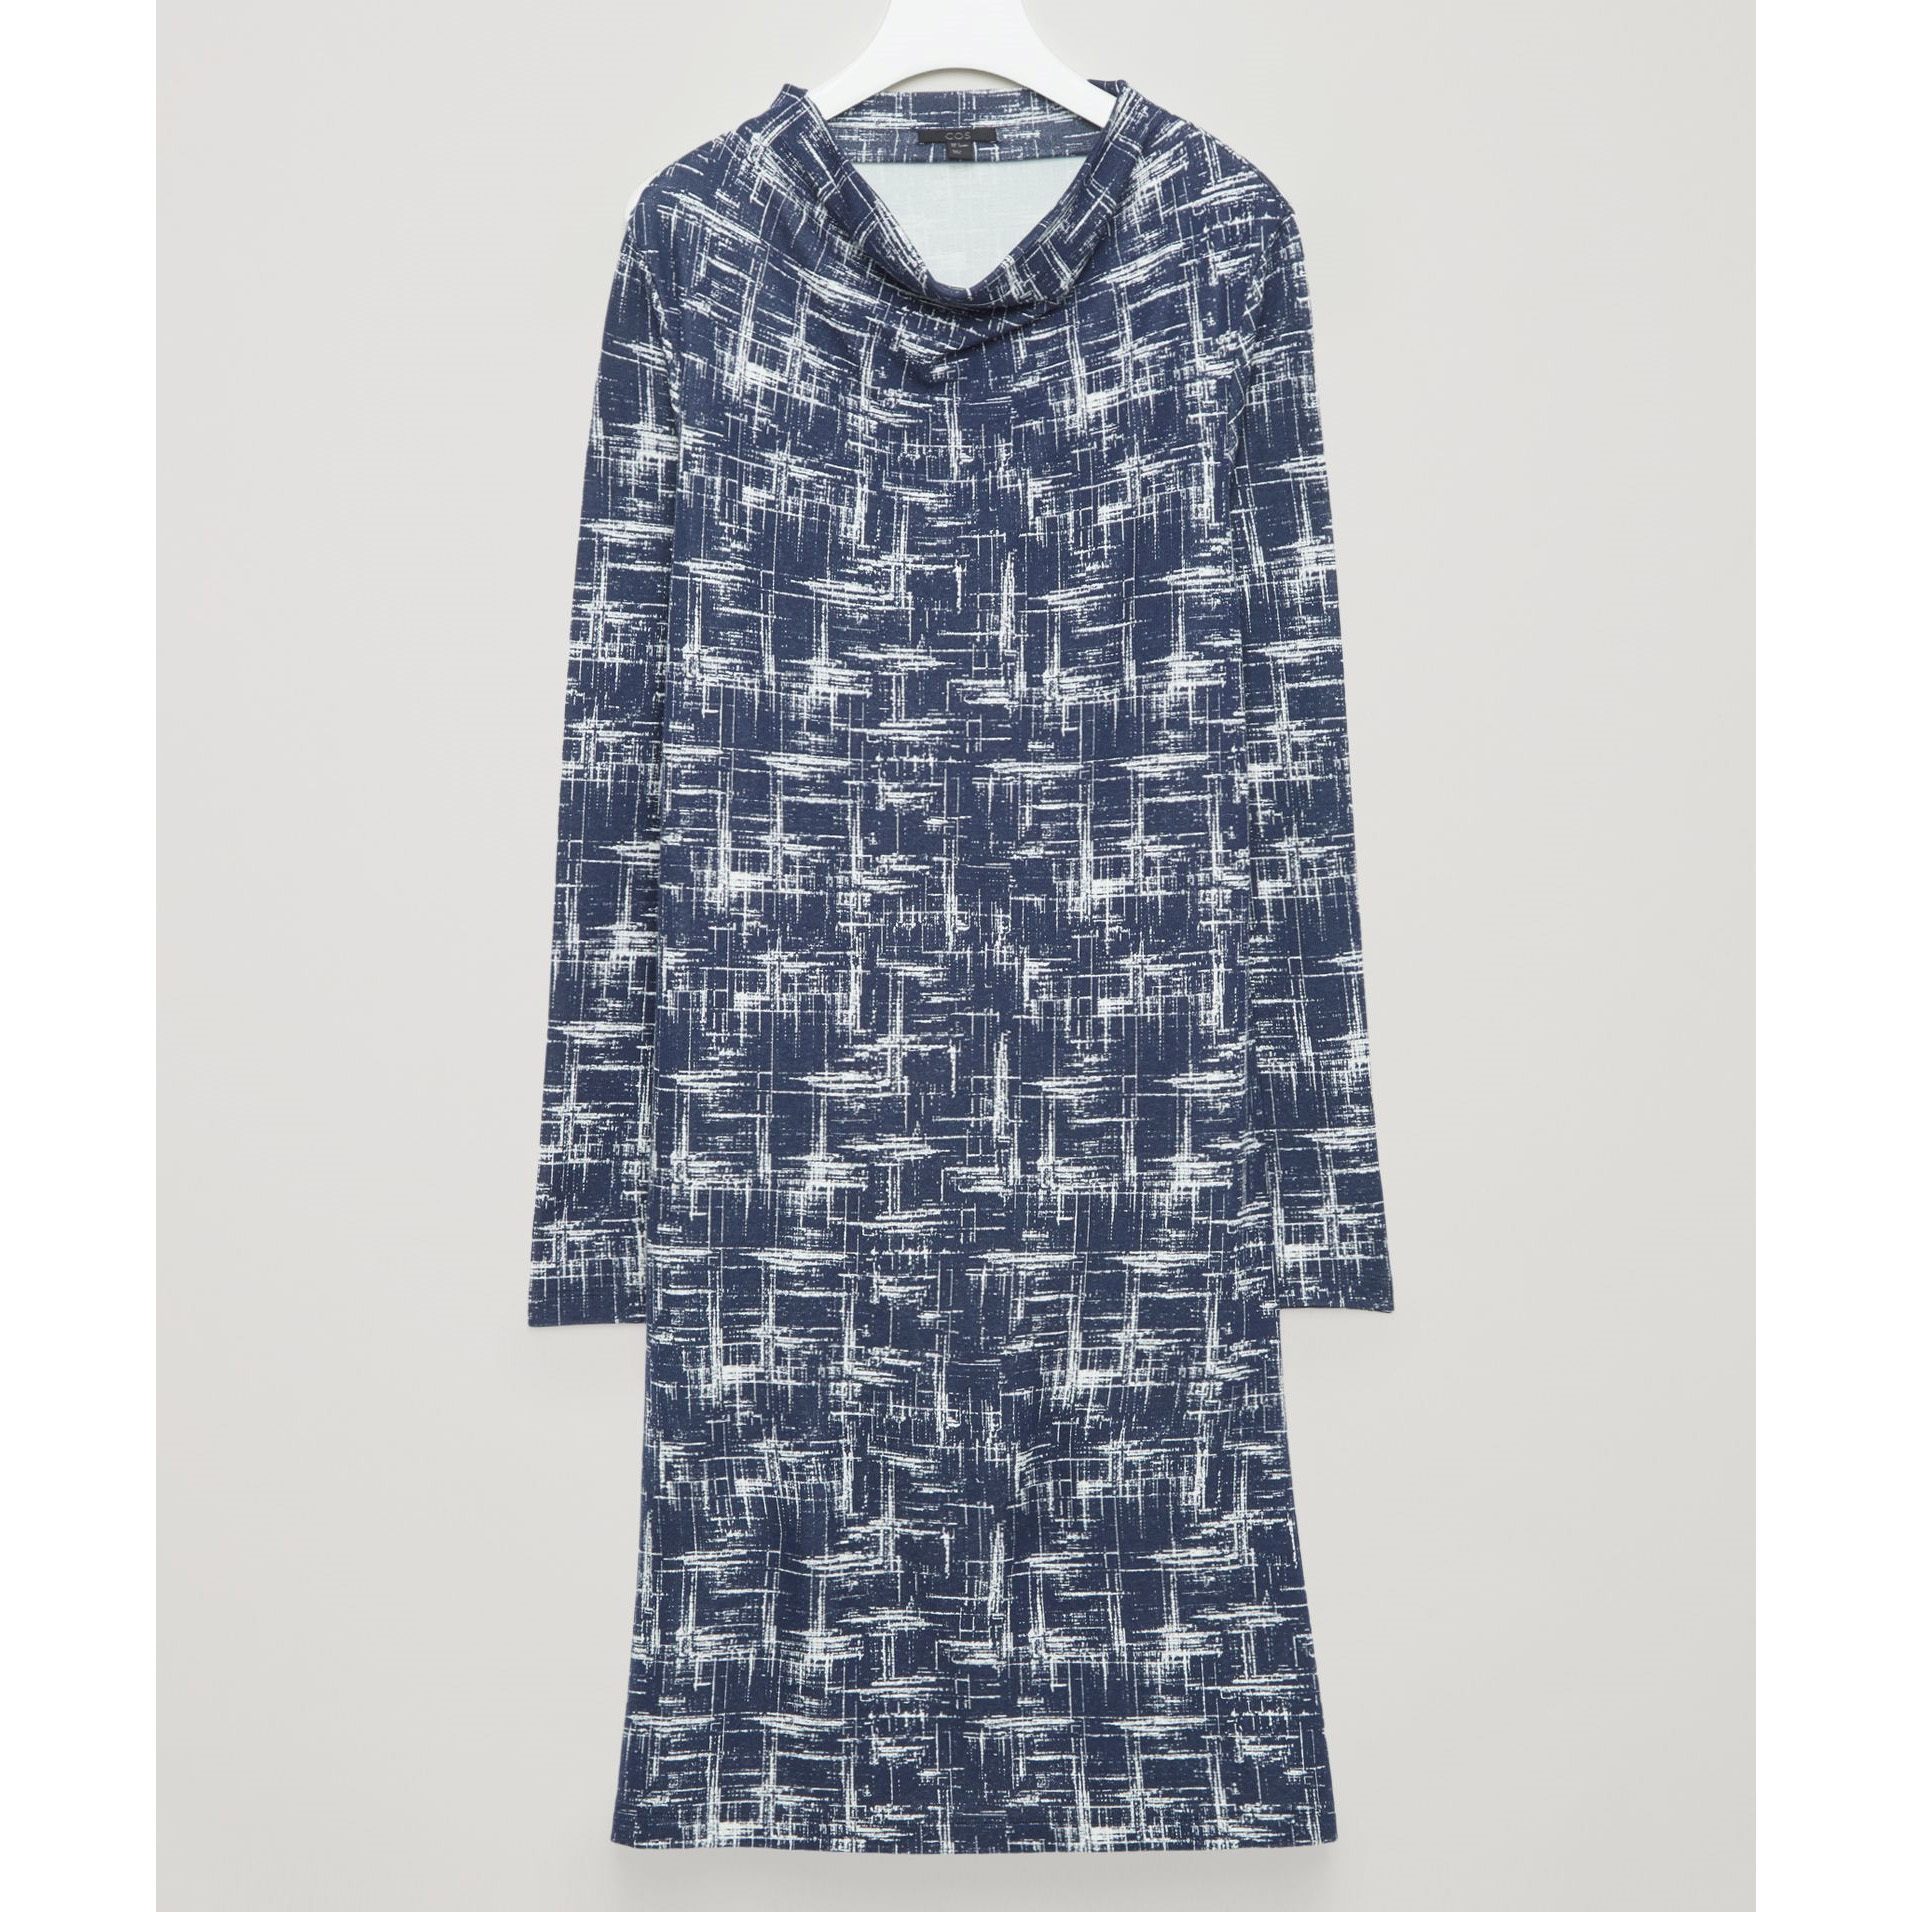 COS☆A-LINE DRESS WITH GROWN-ON NECK / navy